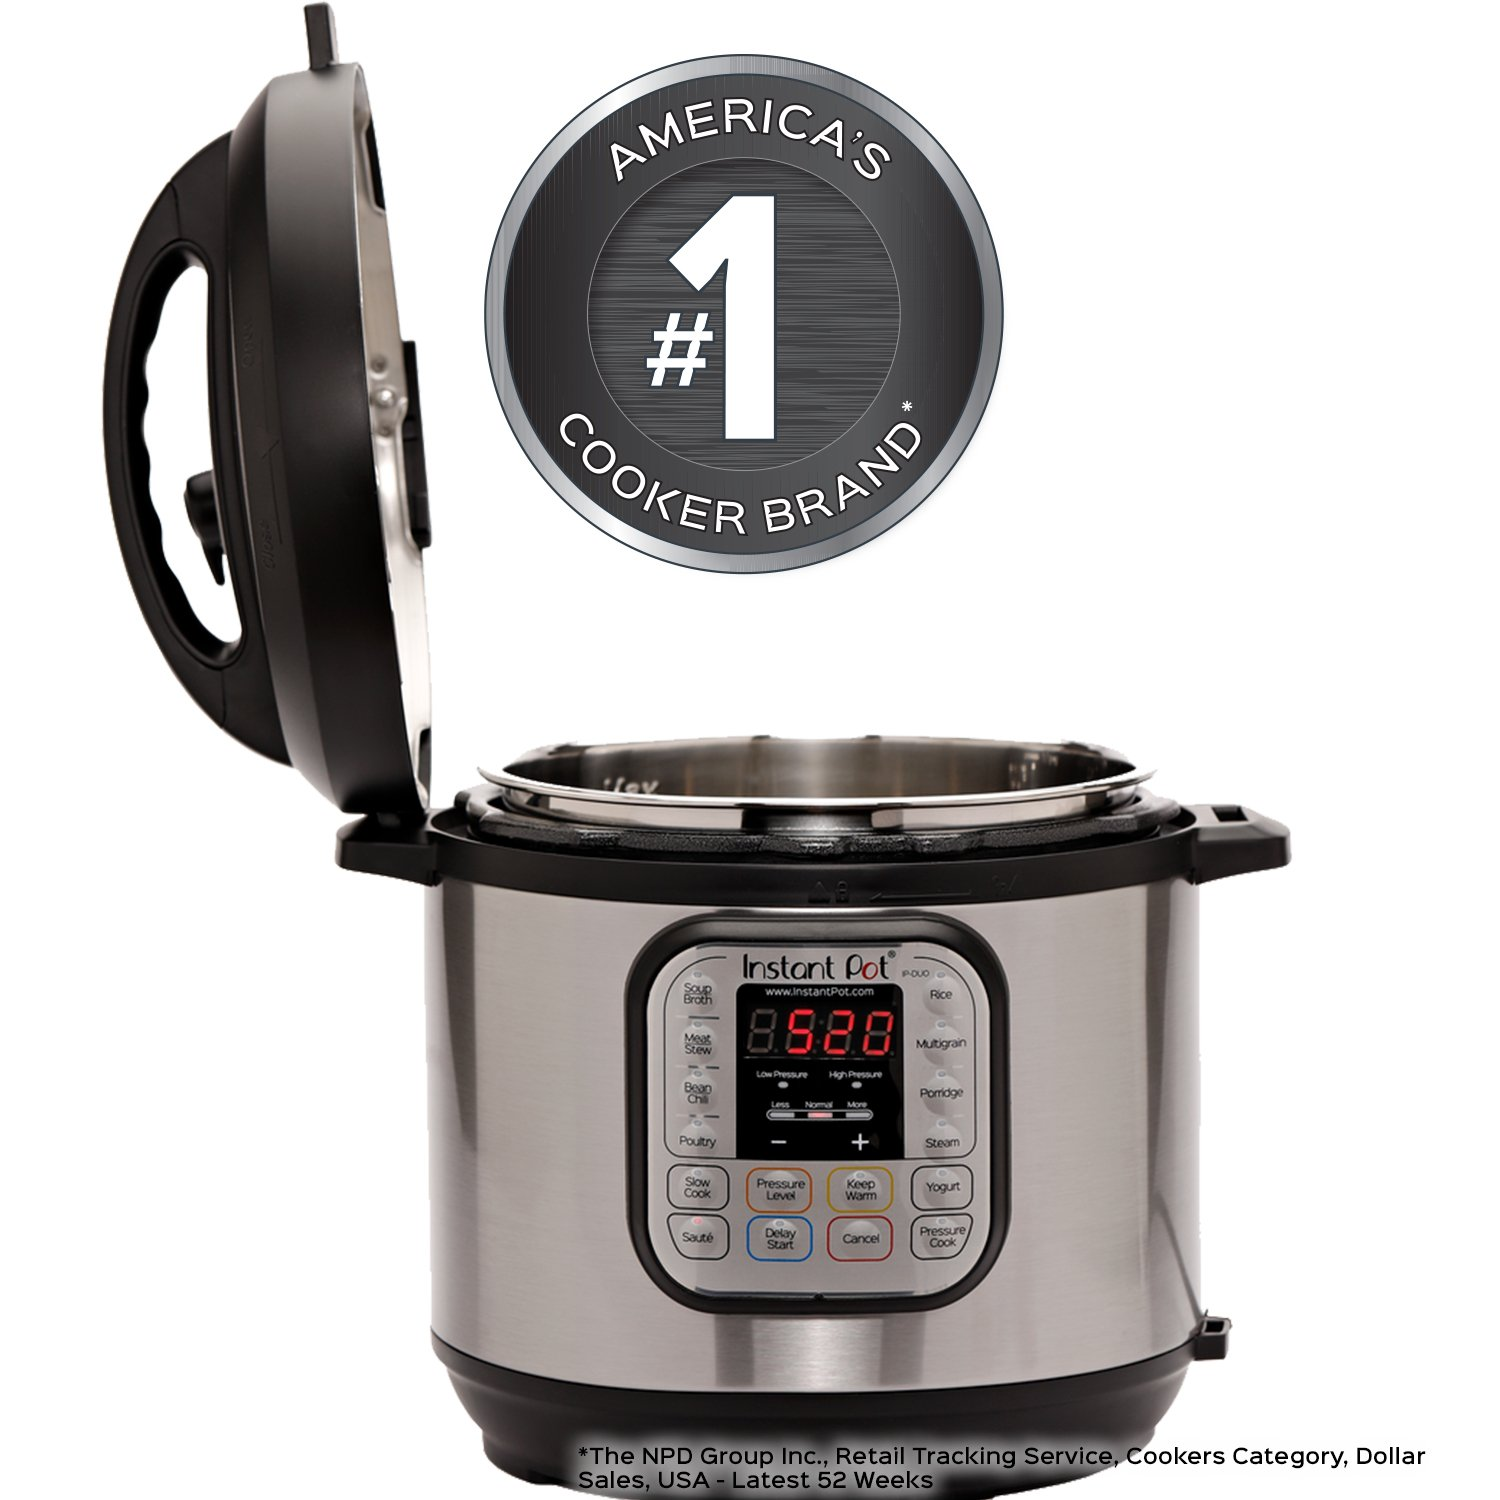 Instant Pot DUO80 8Qt 7-in-1 Multi-Use Programmable Pressure Cooker, Slow Cooker, Rice Cooker, Steamer, Sauté, Yogurt Maker and Warmer